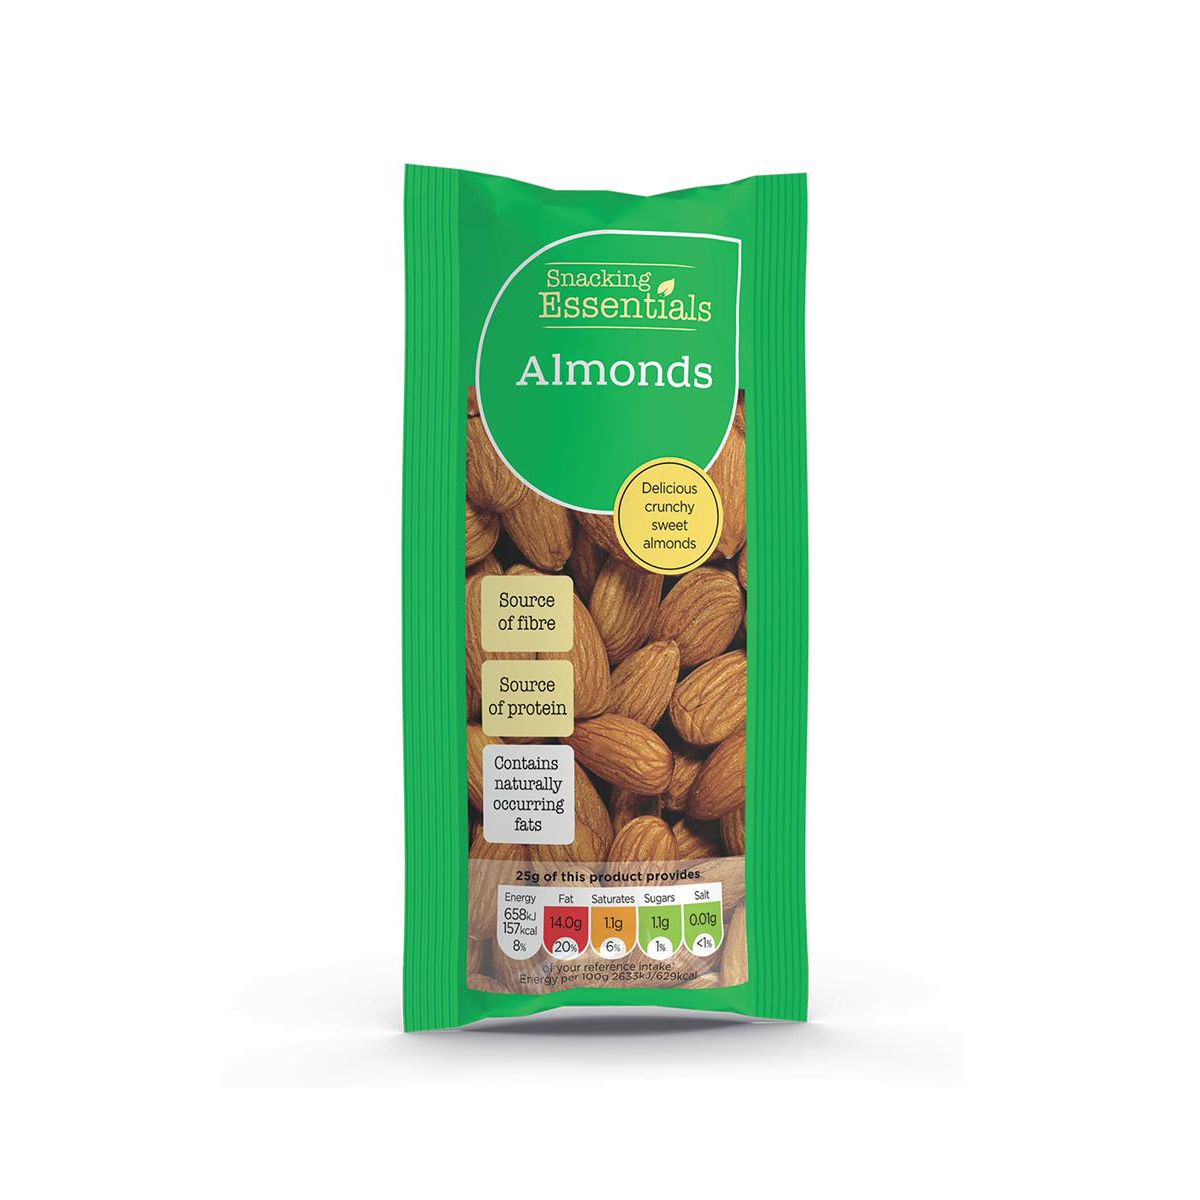 Snacking Essentials Almonds Shots 50g Ref 100150 [Pack 16]